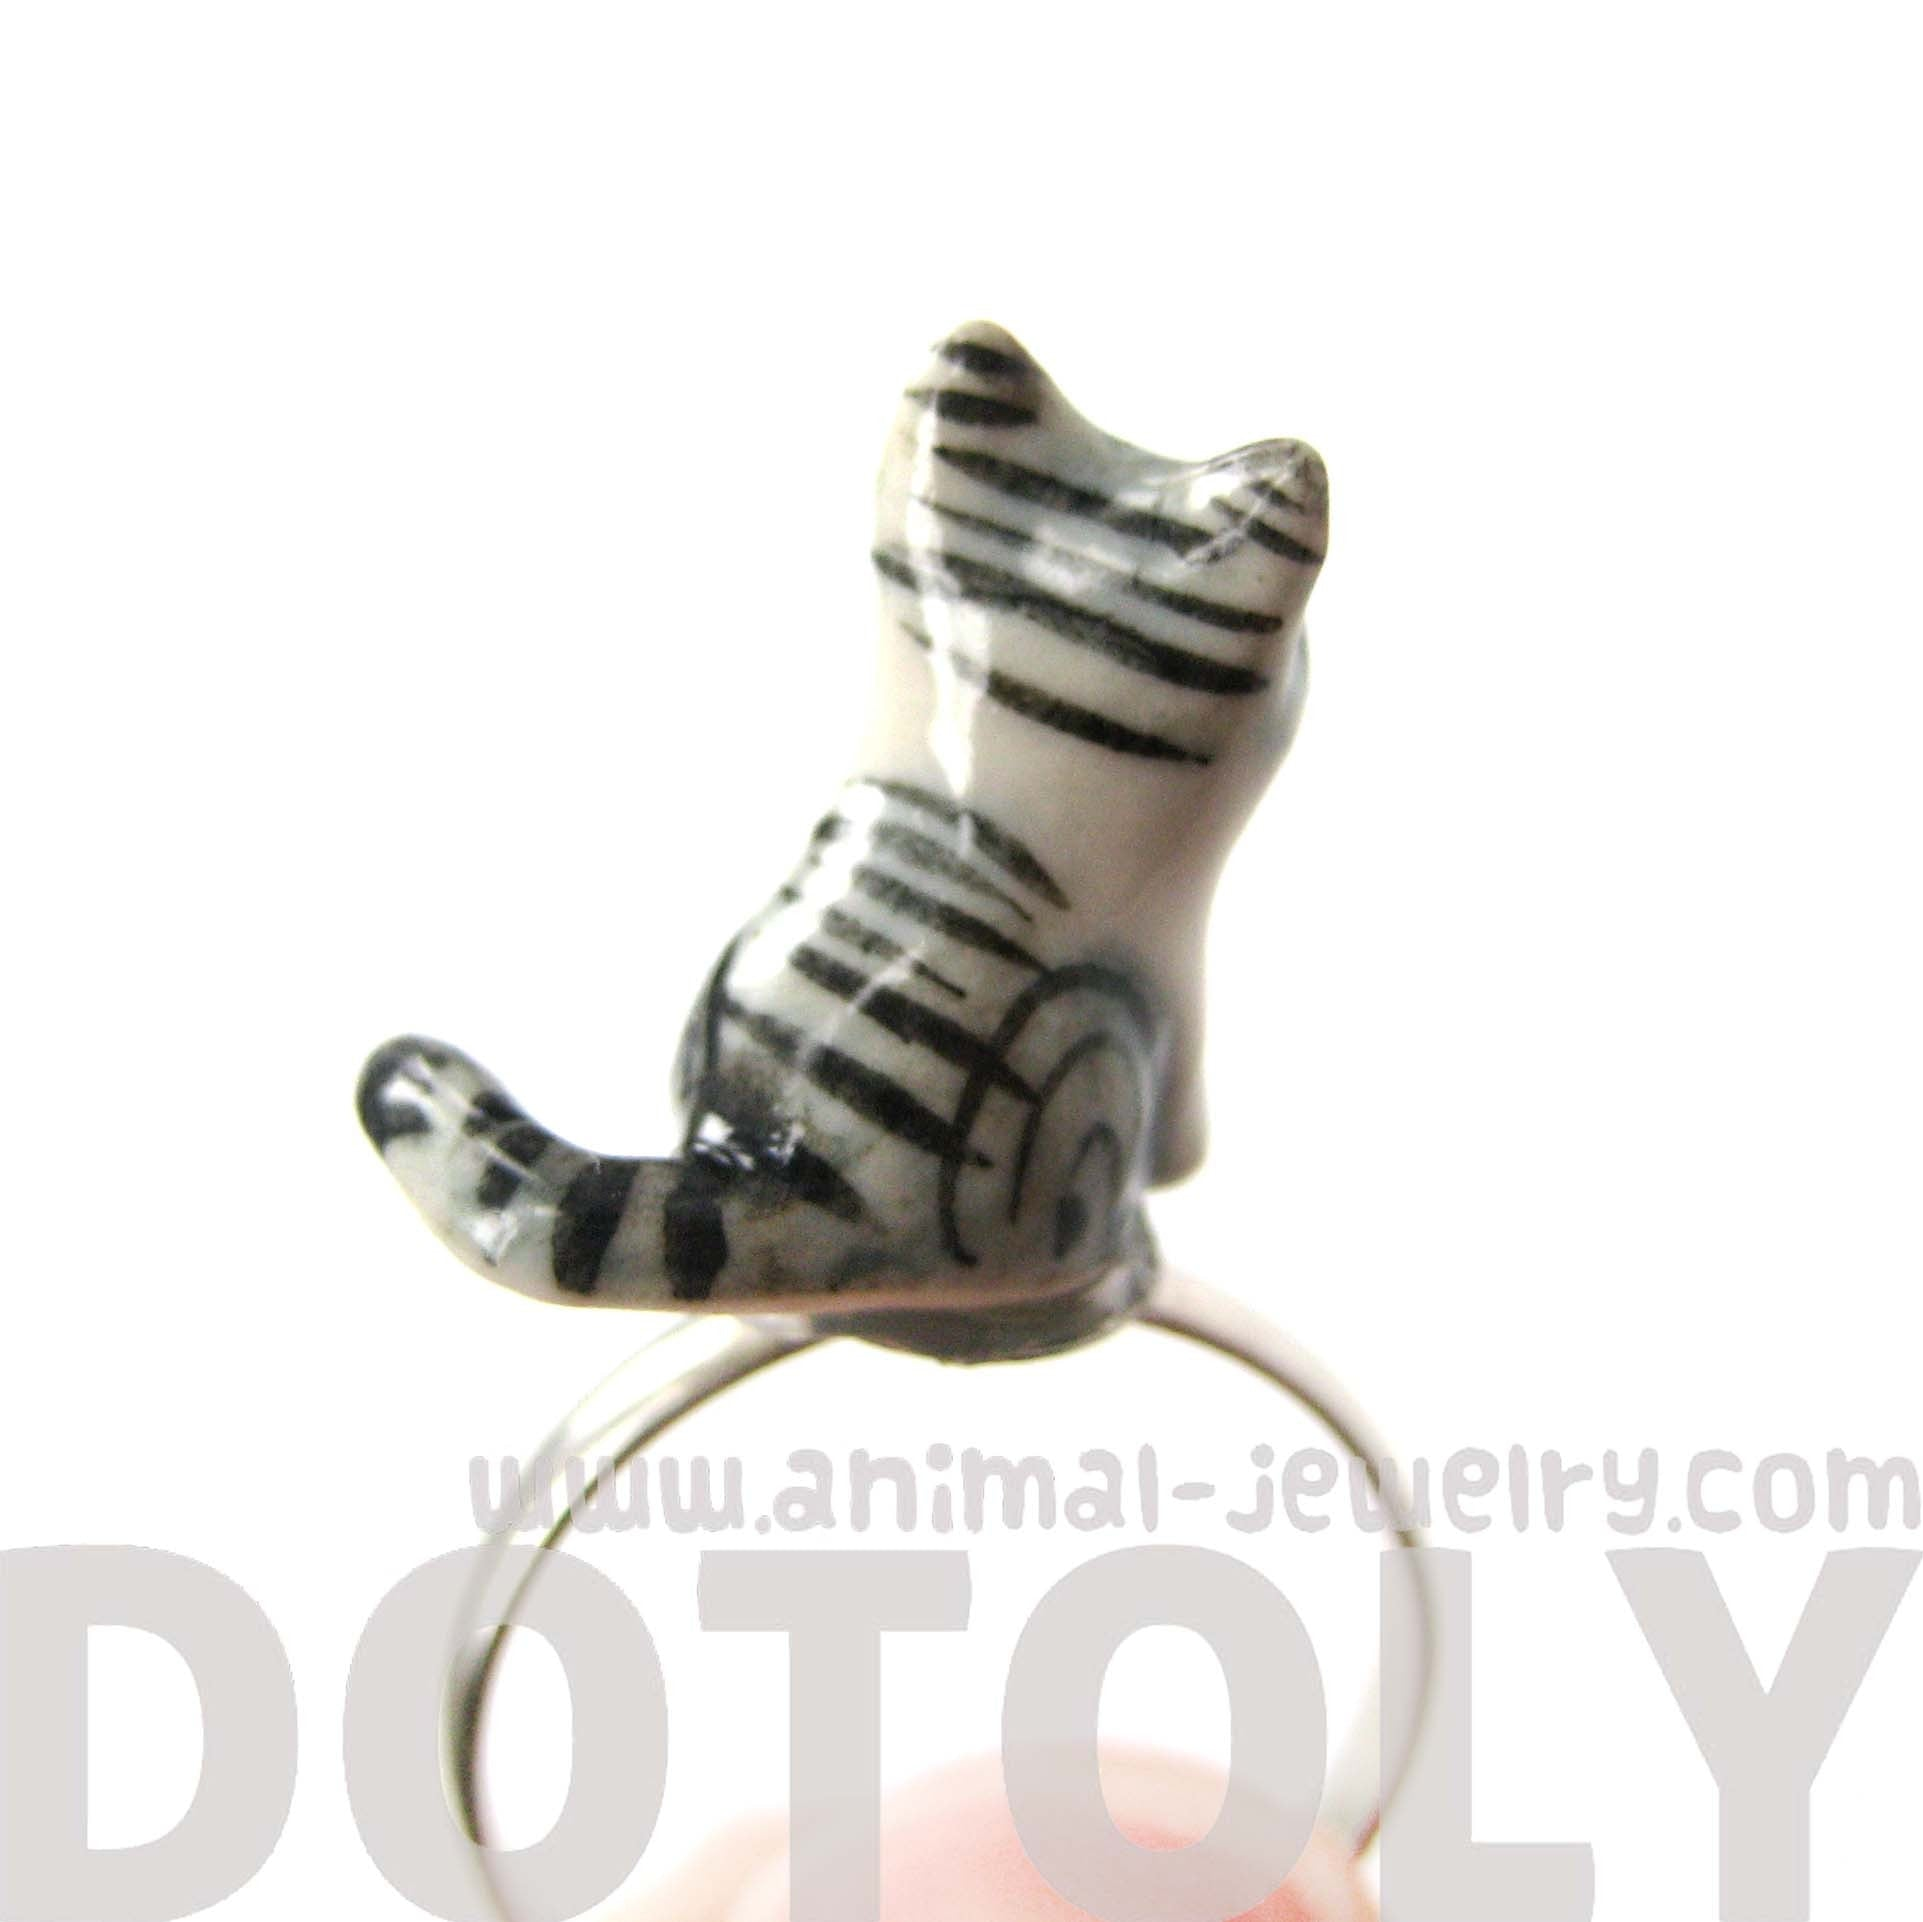 kitty-cat-grey-and-black-striped-porcelain-ceramic-animal-adjustable-ring-handmade